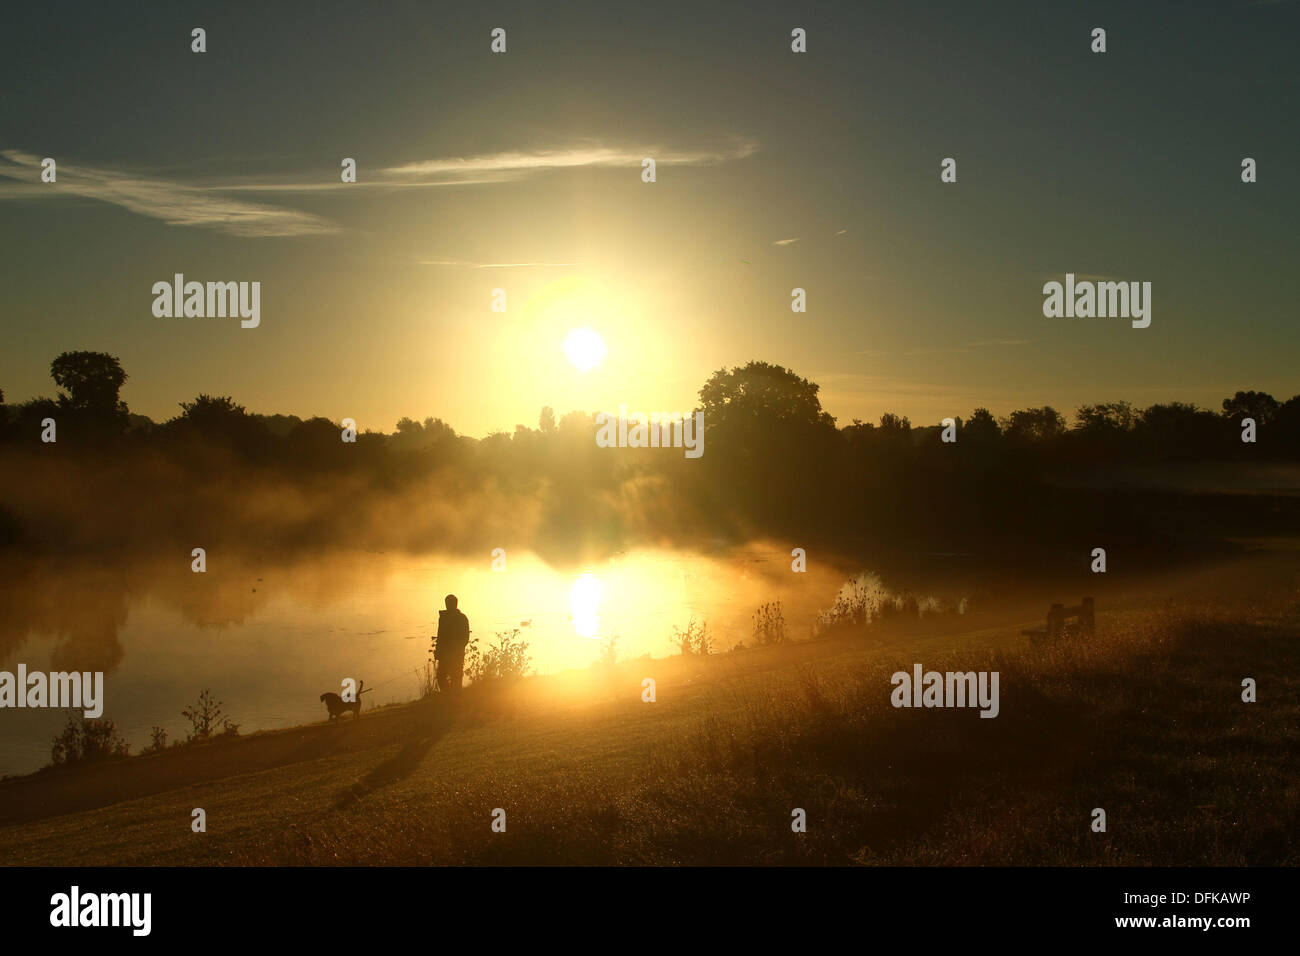 Peterborough, Cambridgeshire, UK. 6th October 2013.  A person out for an early morning walk through the mist at Stock Photo